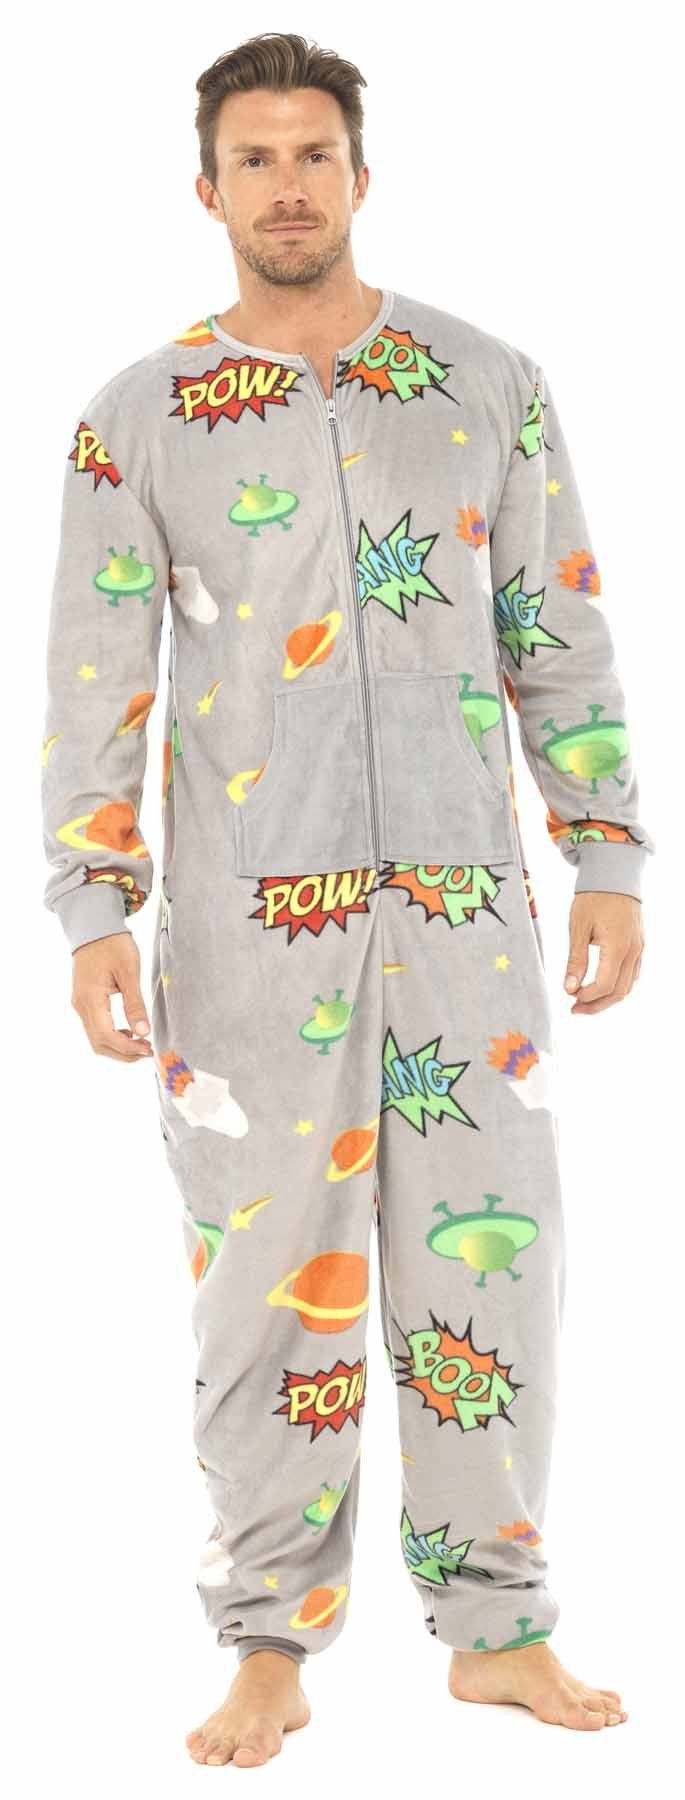 Men's Planet Design All in One Pyjamas Onesie